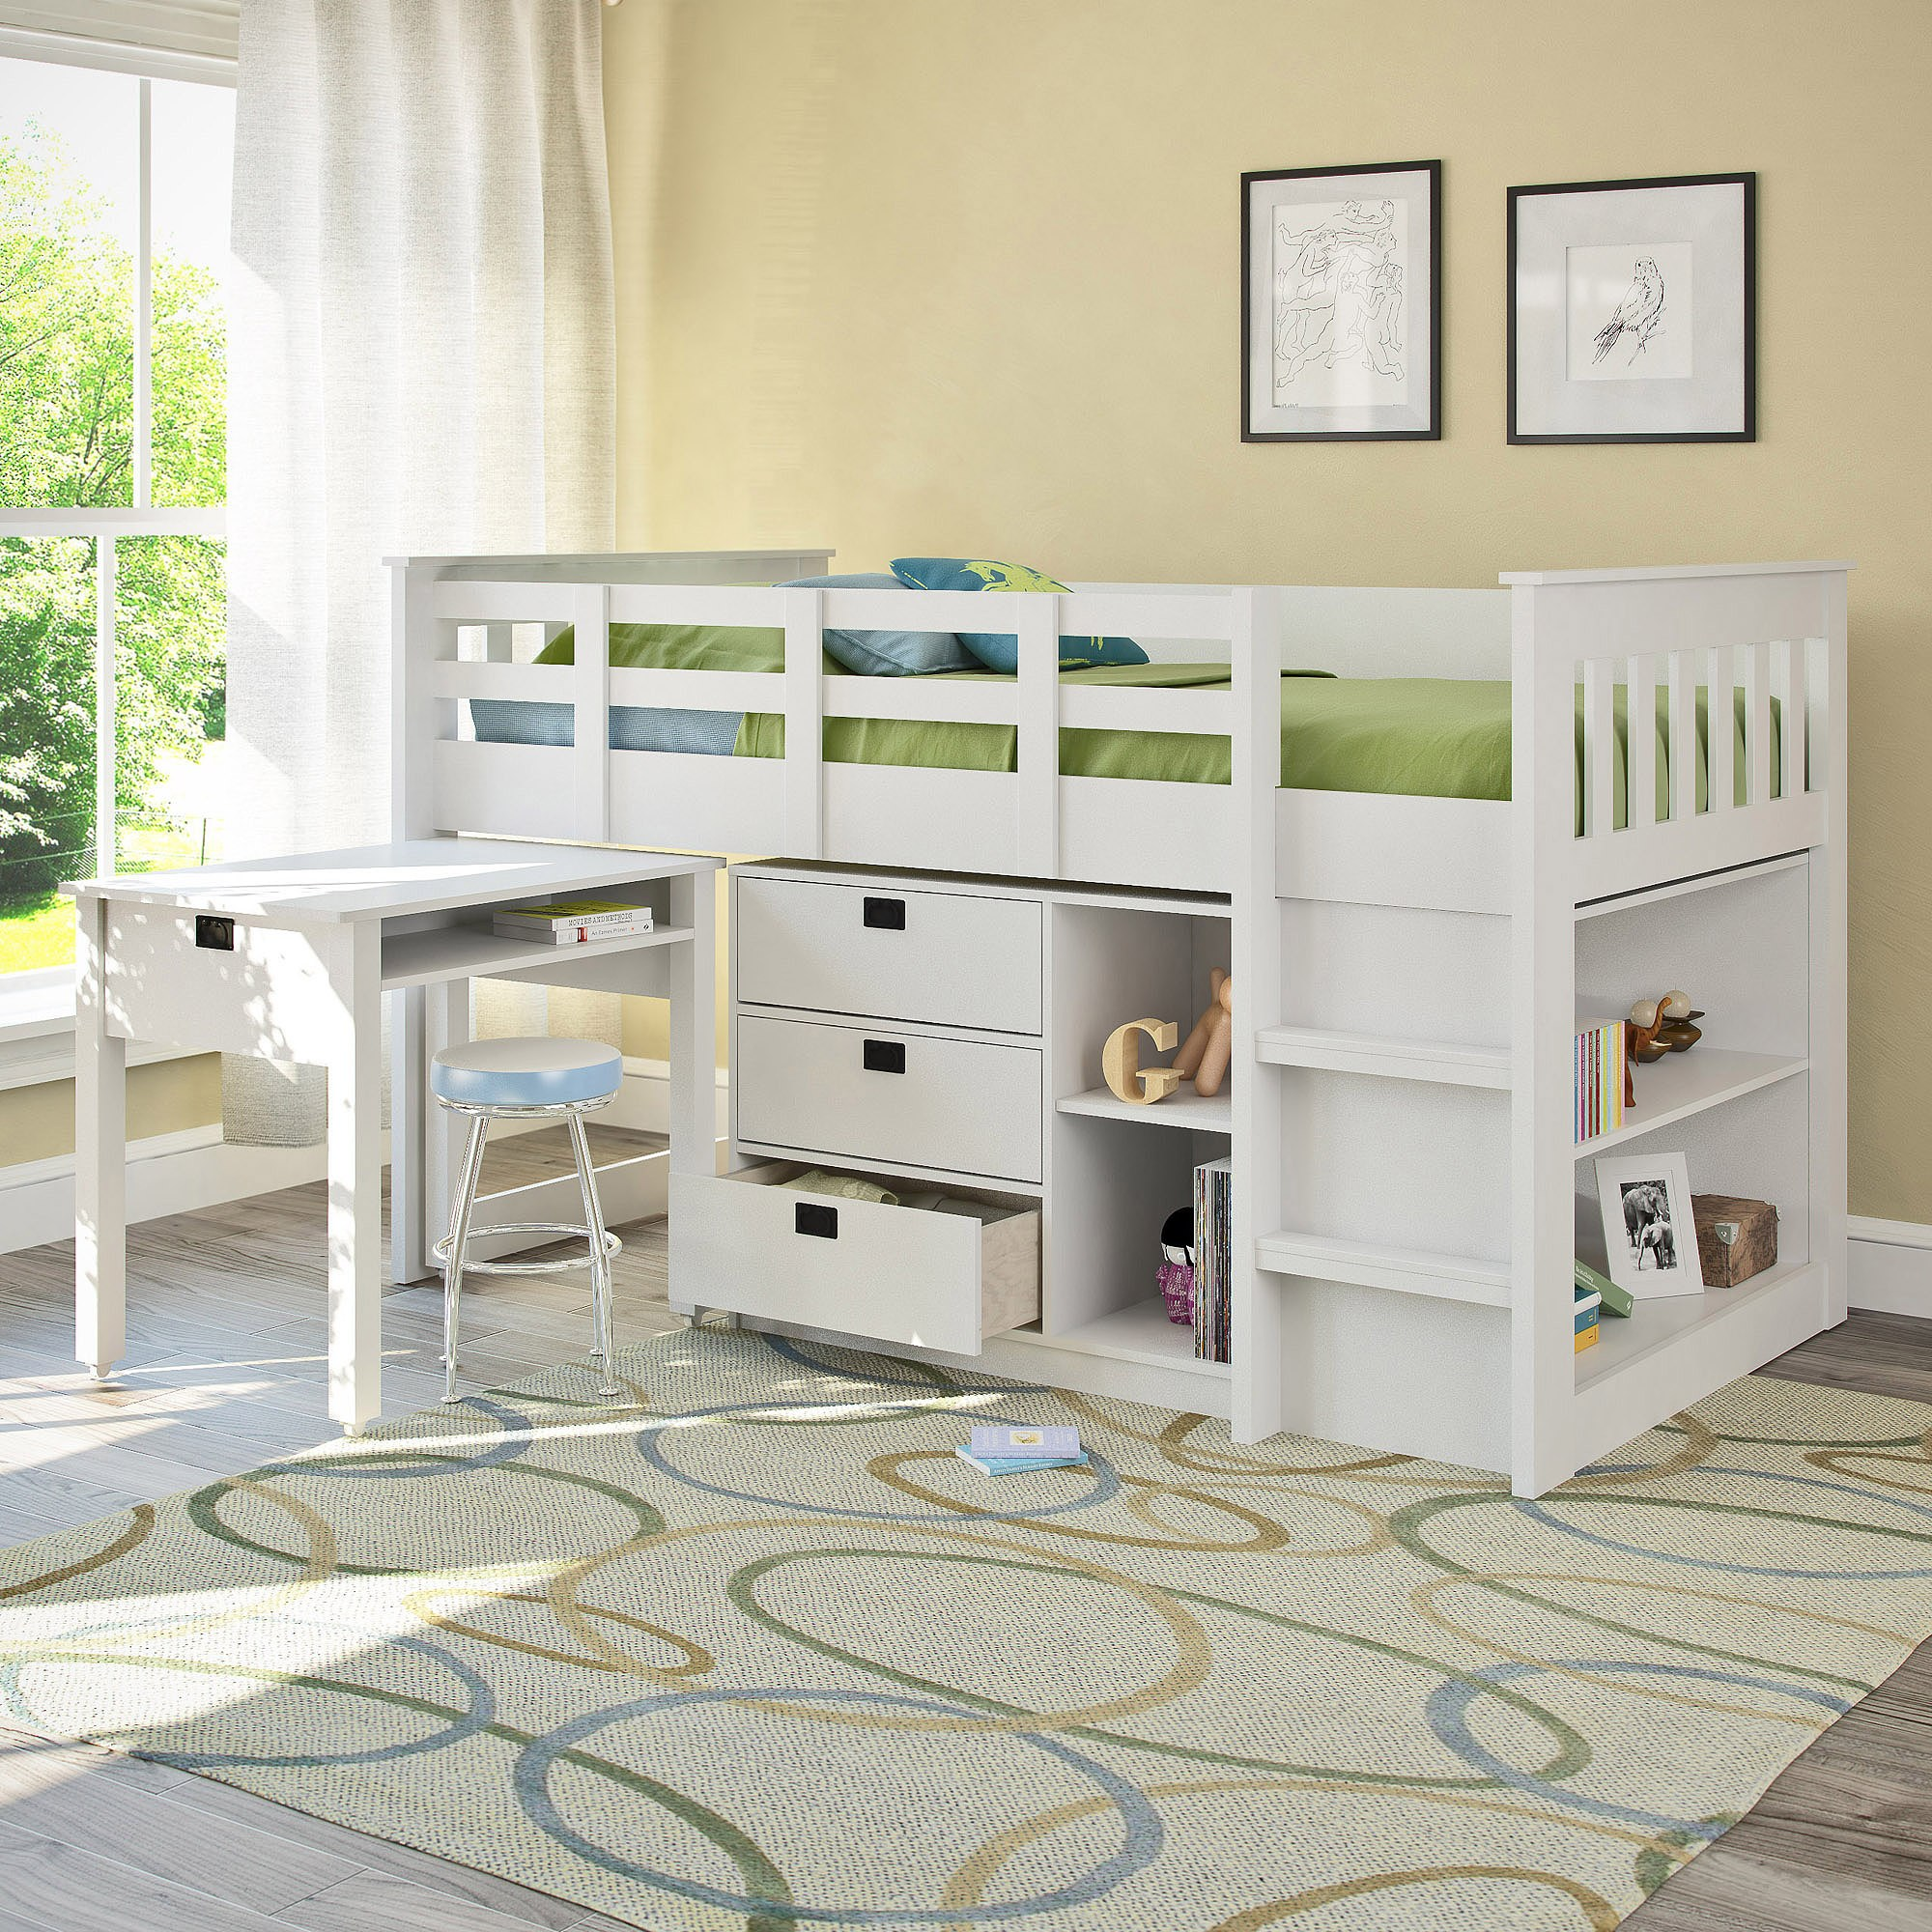 bunk ikea simple popular kids beds perth related zara home congenial loft desk equipped boys double fullsize baby crib bedding sets girlswear quilt covers table furniture